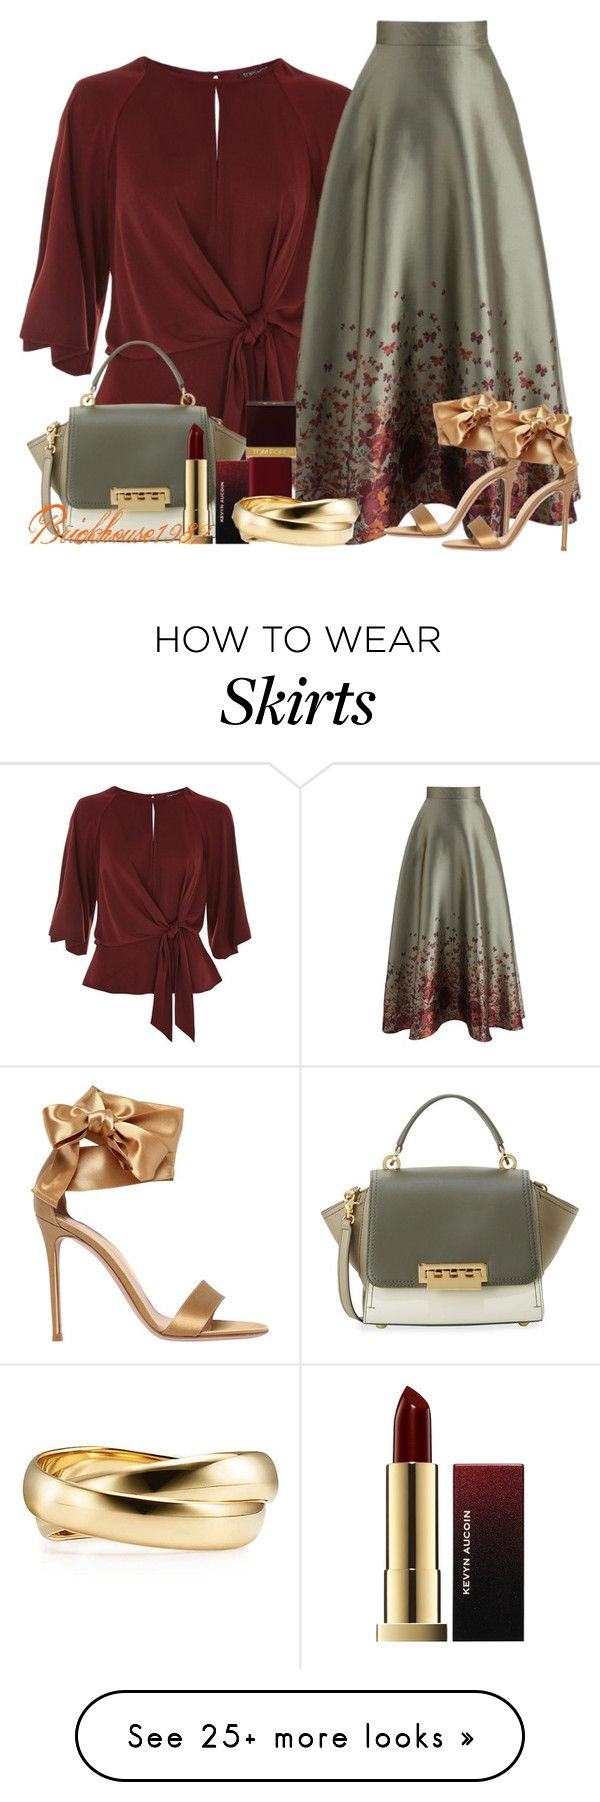 """""""Butterfly Wonderland Skirt"""" by brickhouse1982 on Polyvore featuring Topshop, Chicwish, ZAC Zac Posen, Tom Ford, Kevyn Aucoin and Gianvito Rossi"""